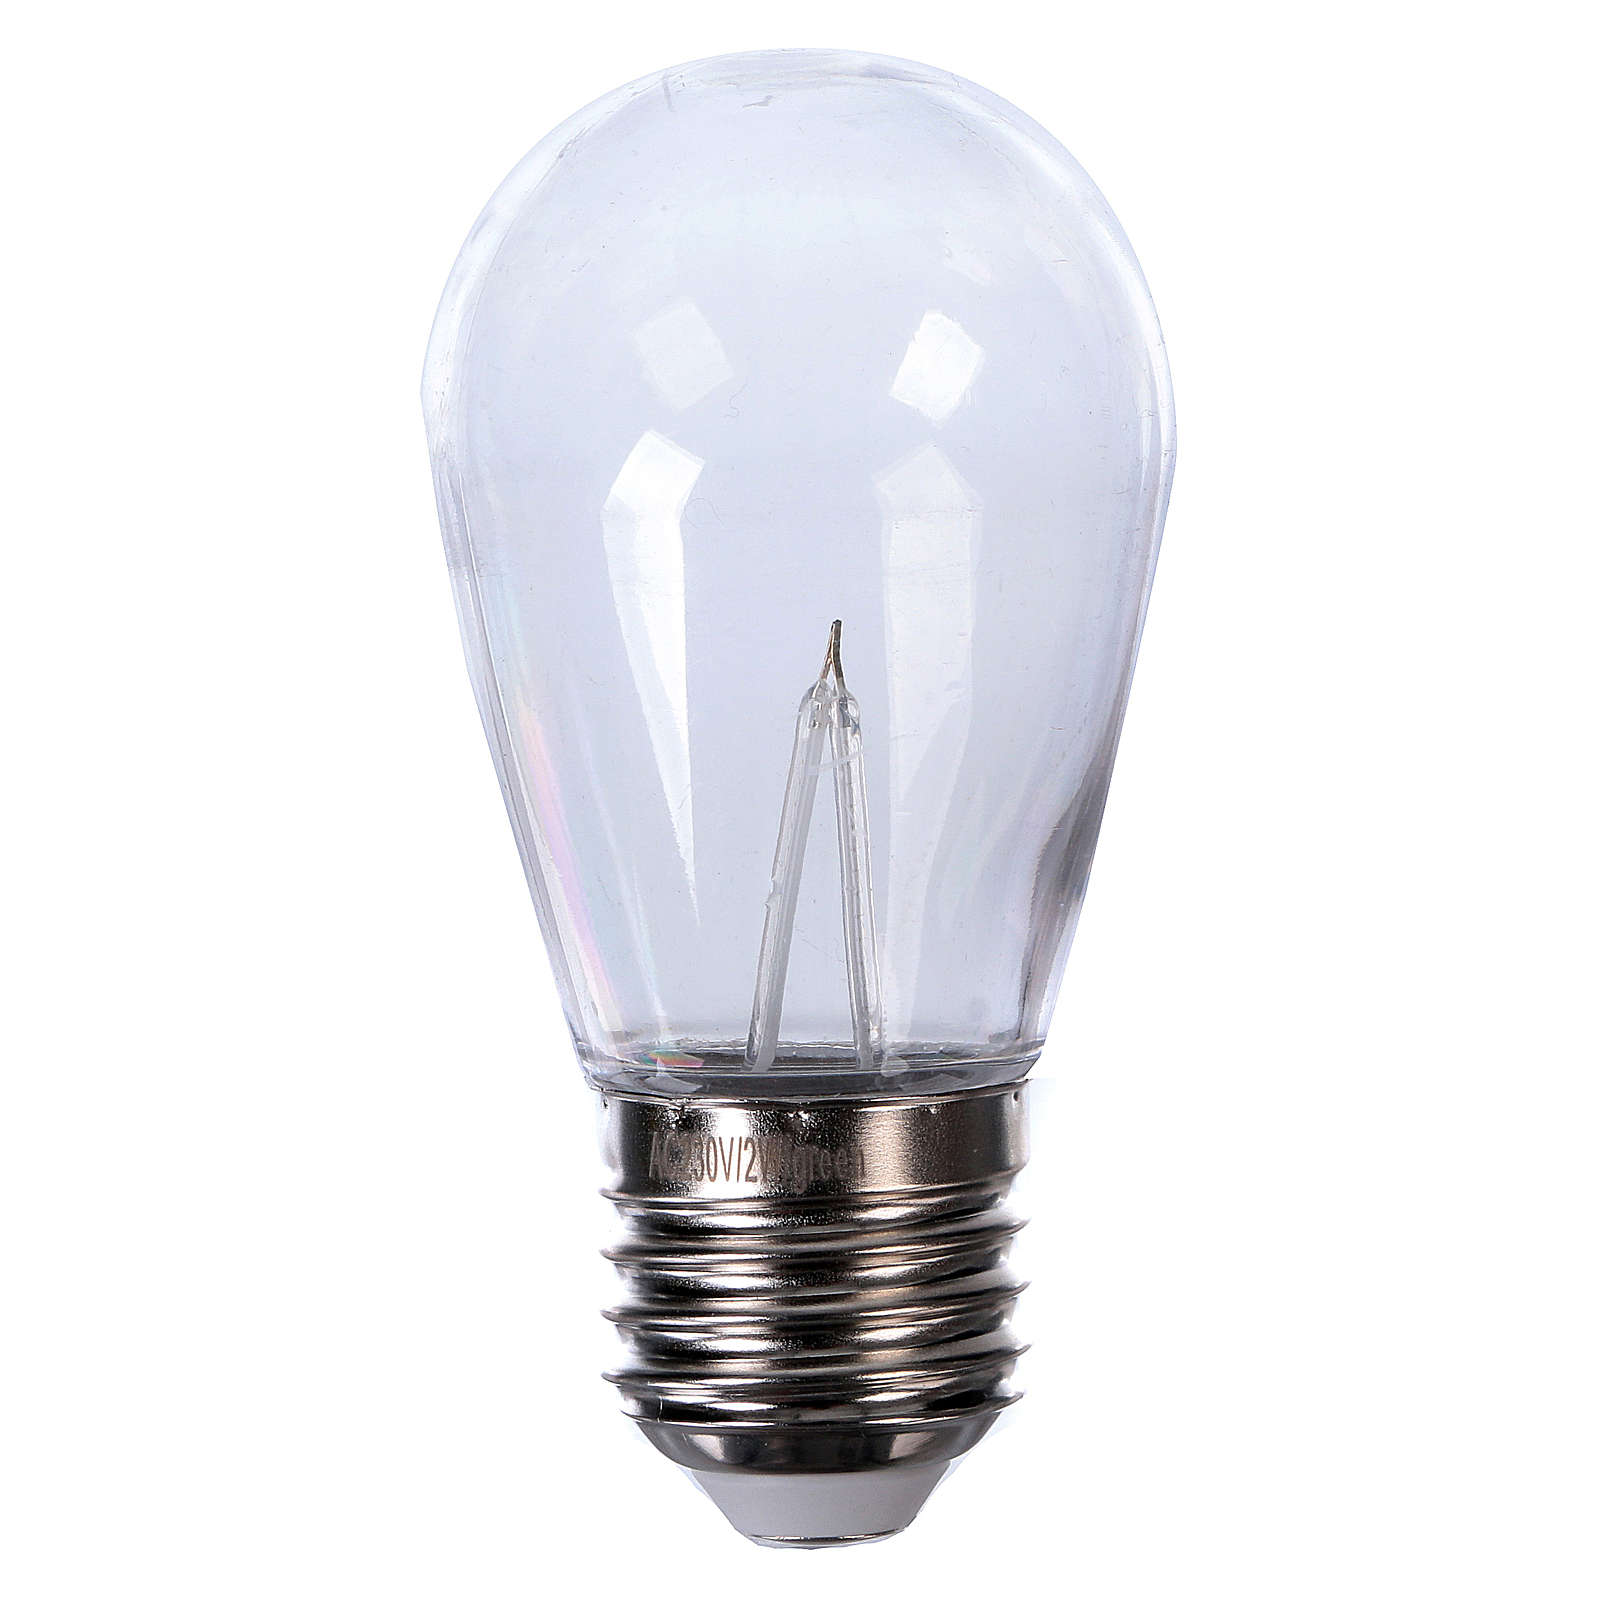 Blue drop light bulb E27 for lamp holder chains 3